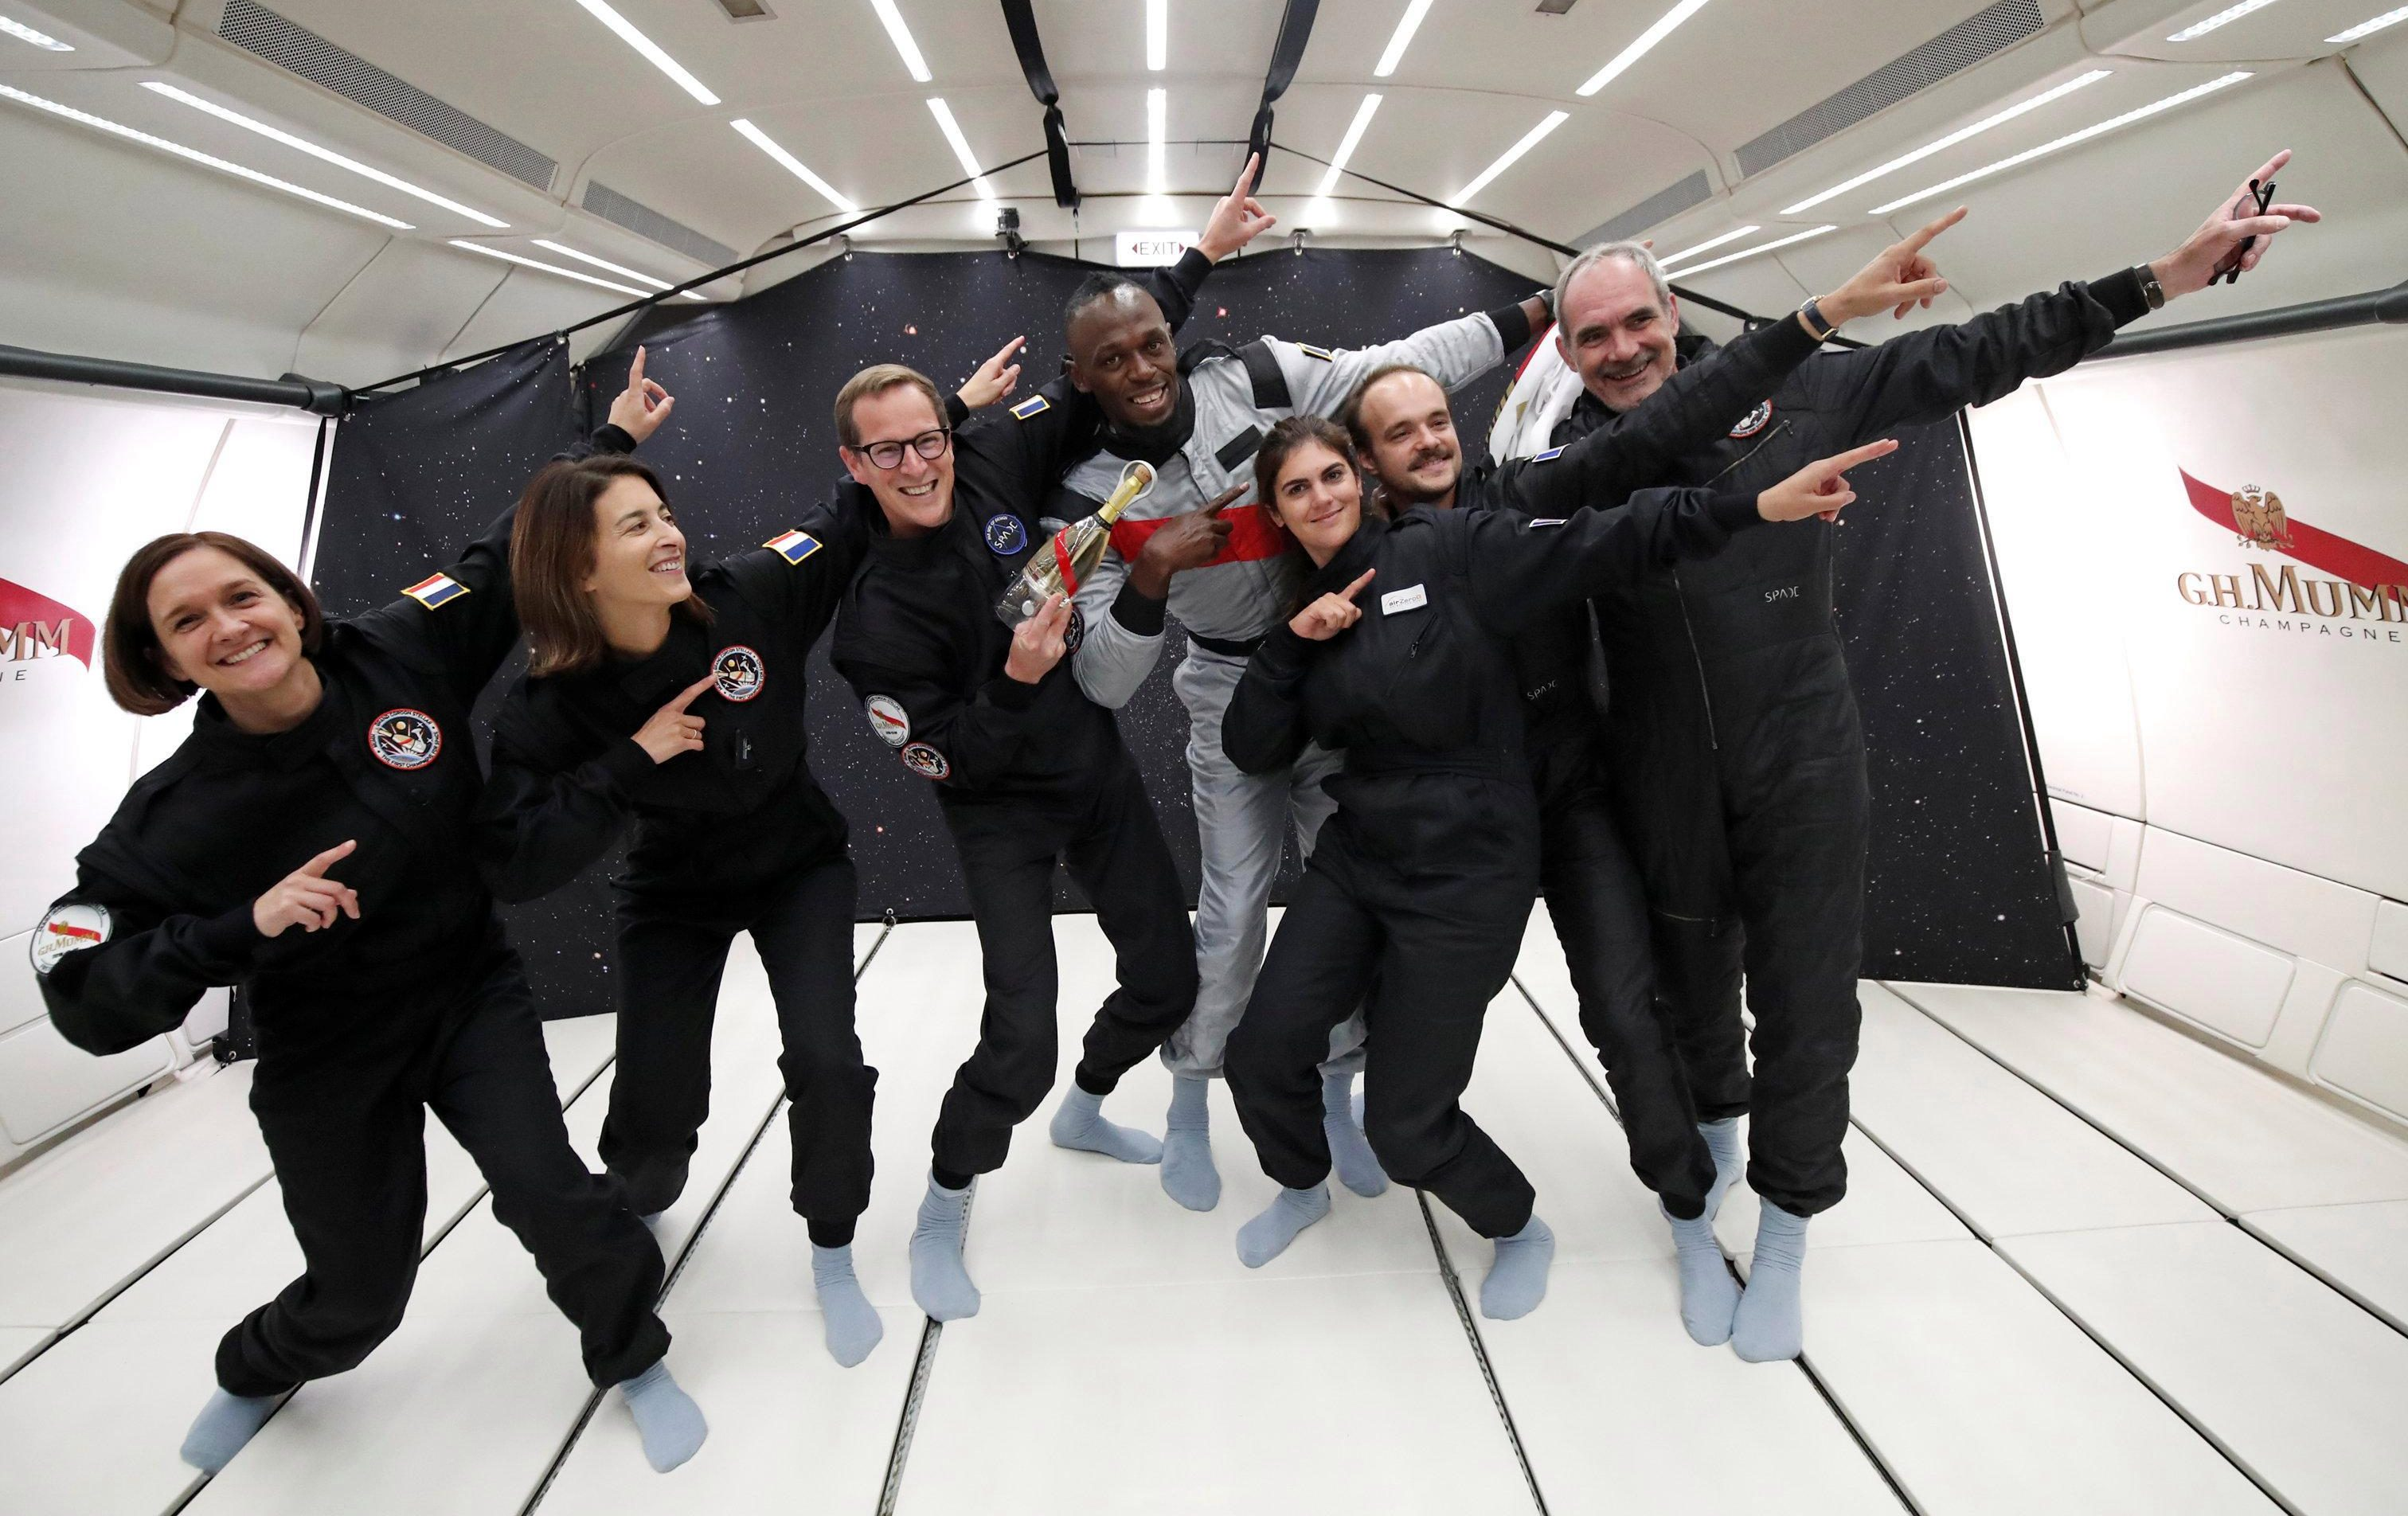 Sprinter turned footballer Usain Bolt helps his astronautical colleagues strike a pose - even without gravity